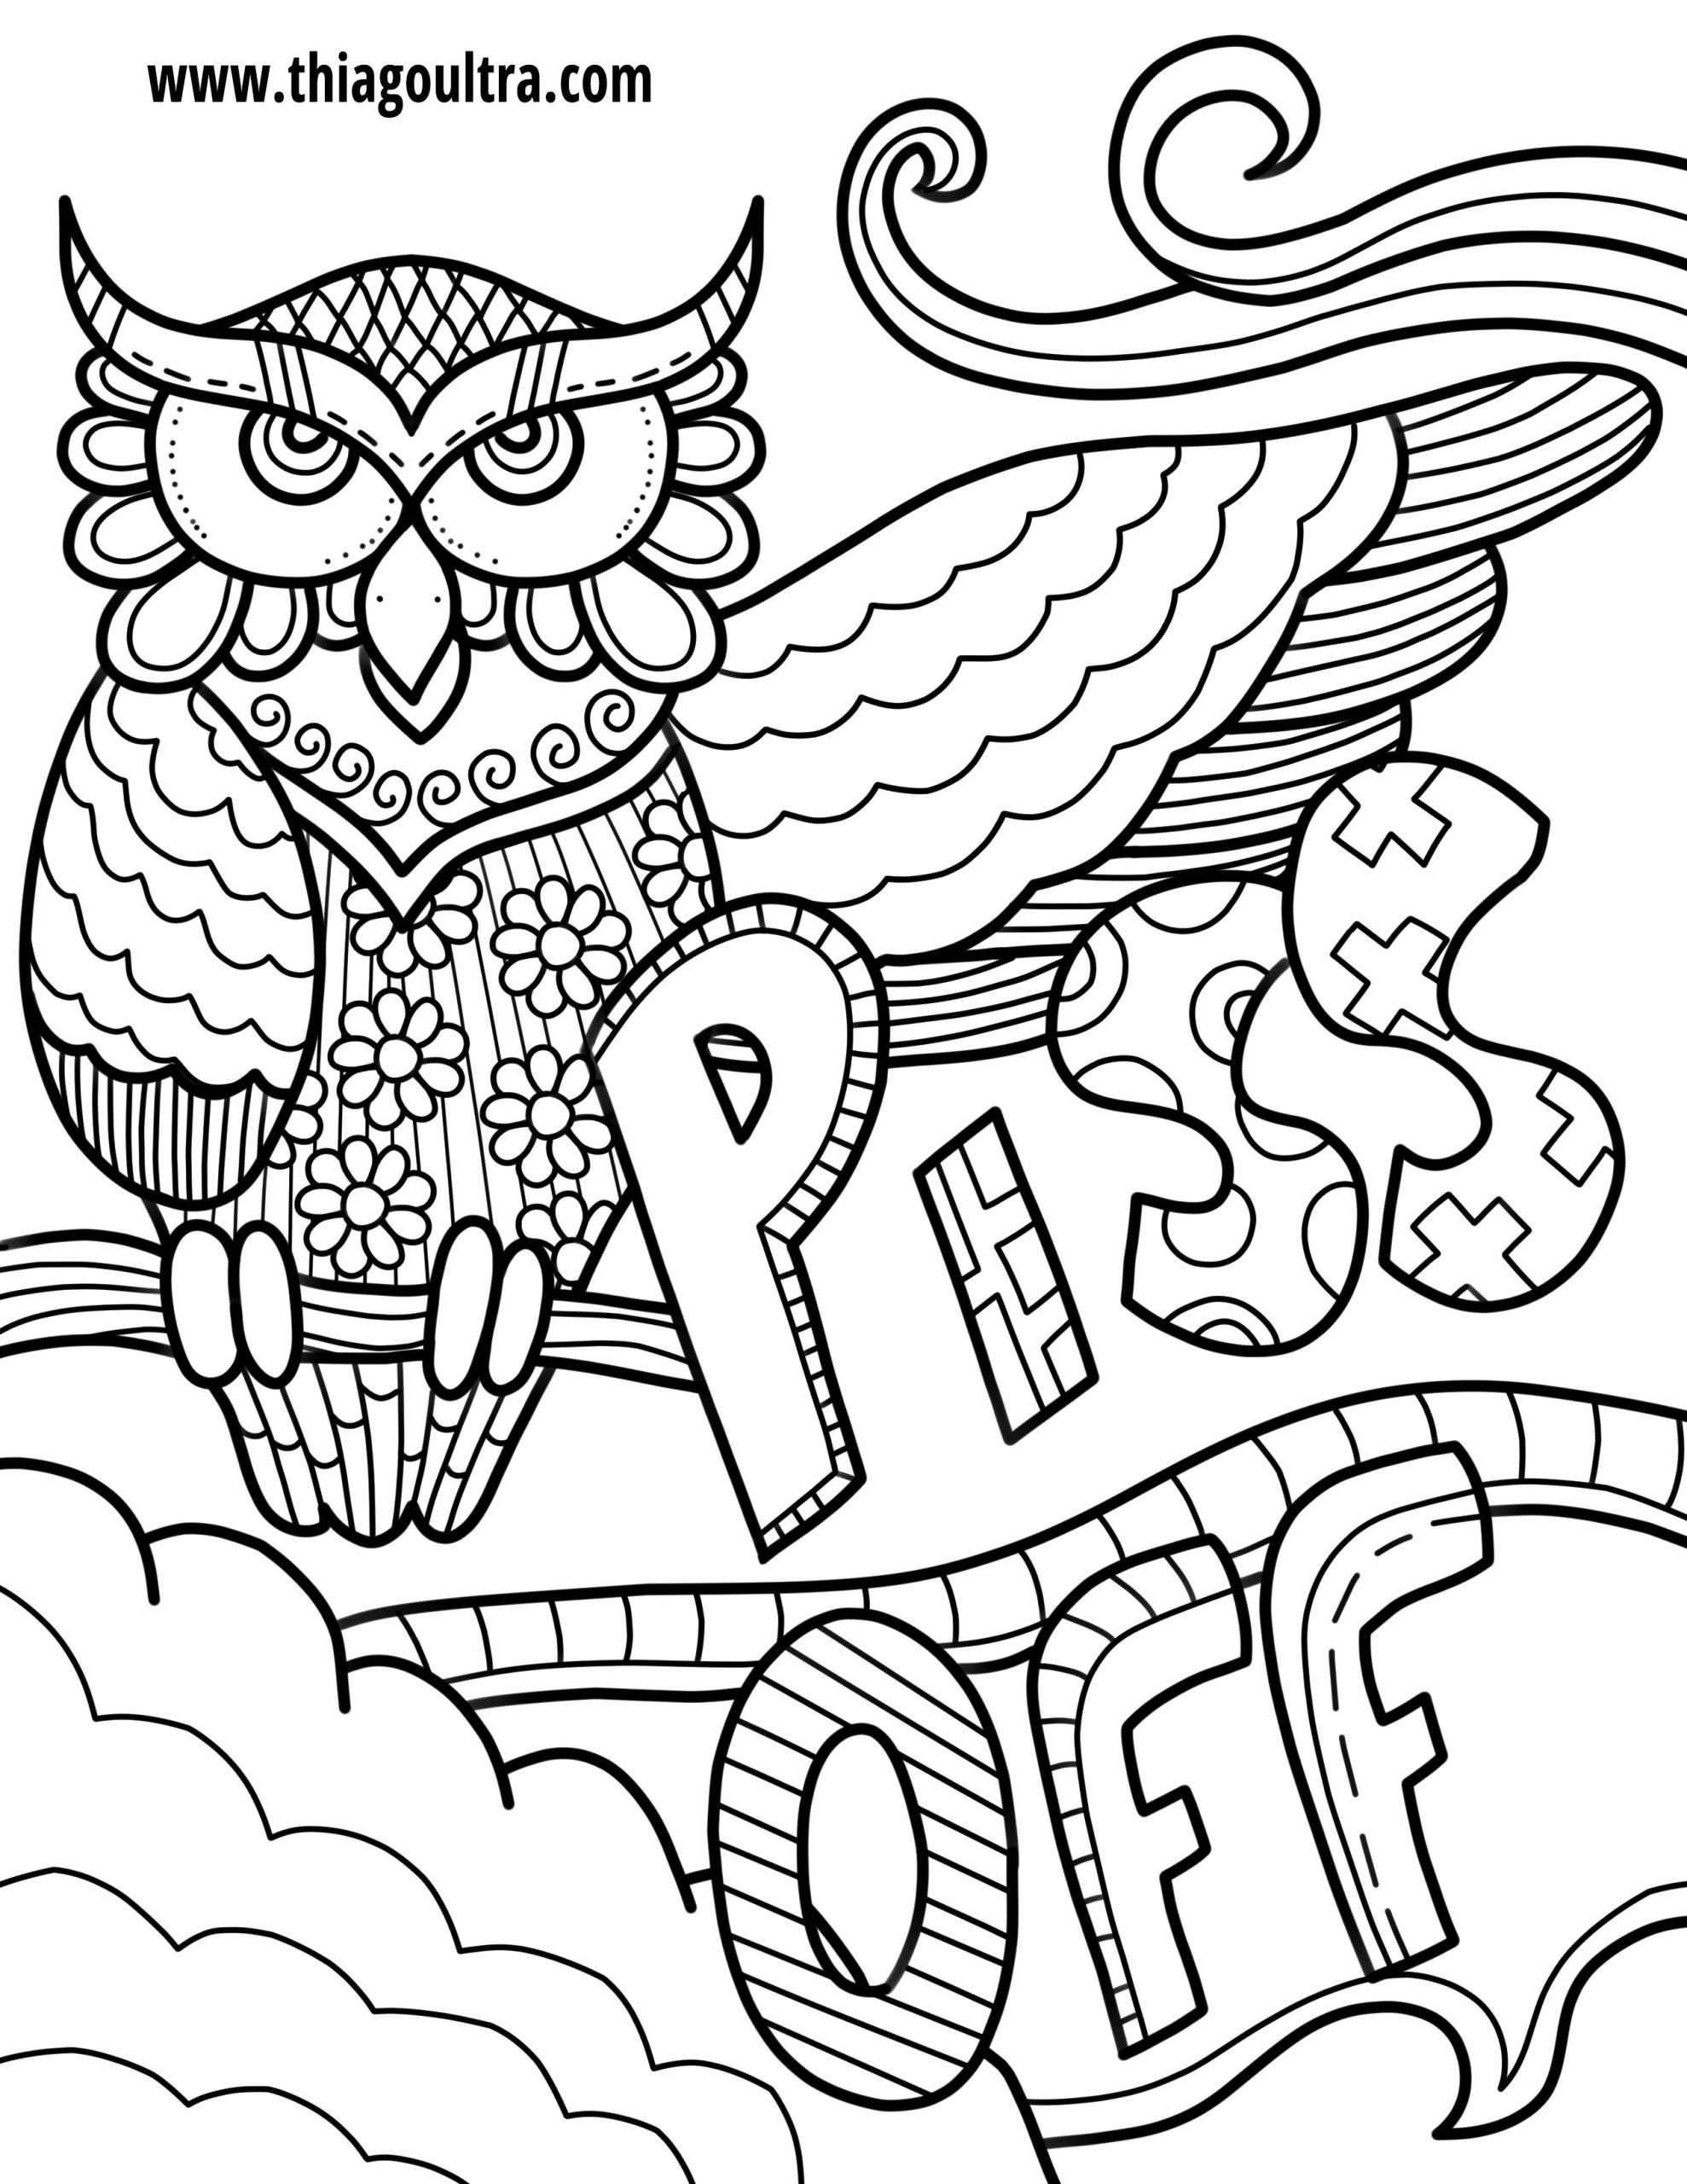 Adult Swear Coloring Pages  Adult Swear Coloring Pages at GetDrawings